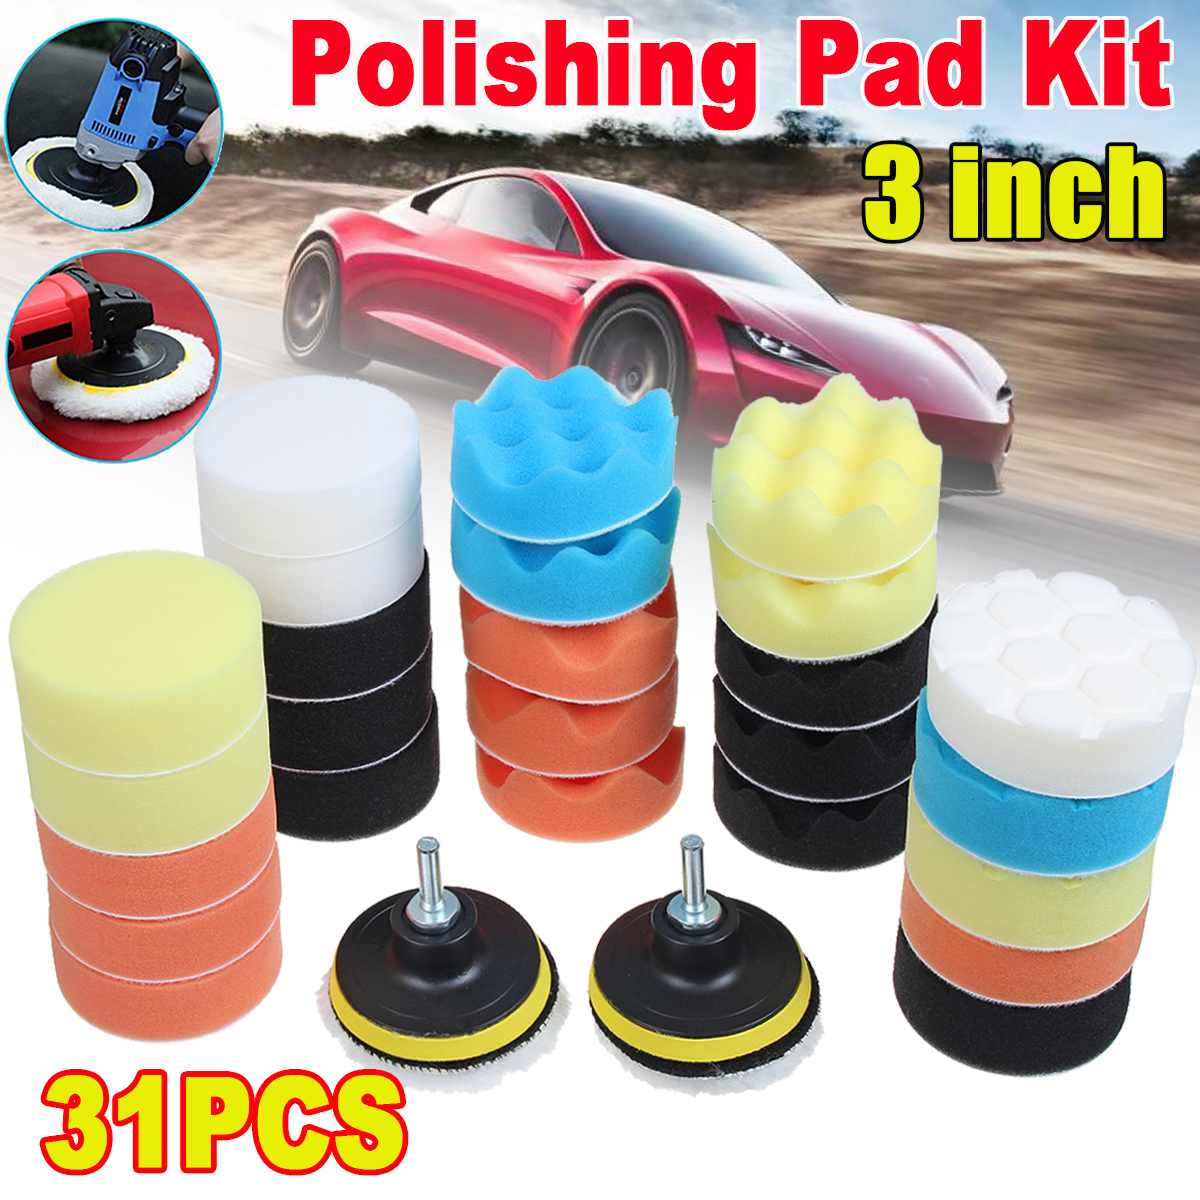 10/22/31Pcs Buffing Pad Set Thread 3 Inch 80mm Auto Car Polishing Pad Kit For Car Polisher + Drill Adaptor M10 Power Tools